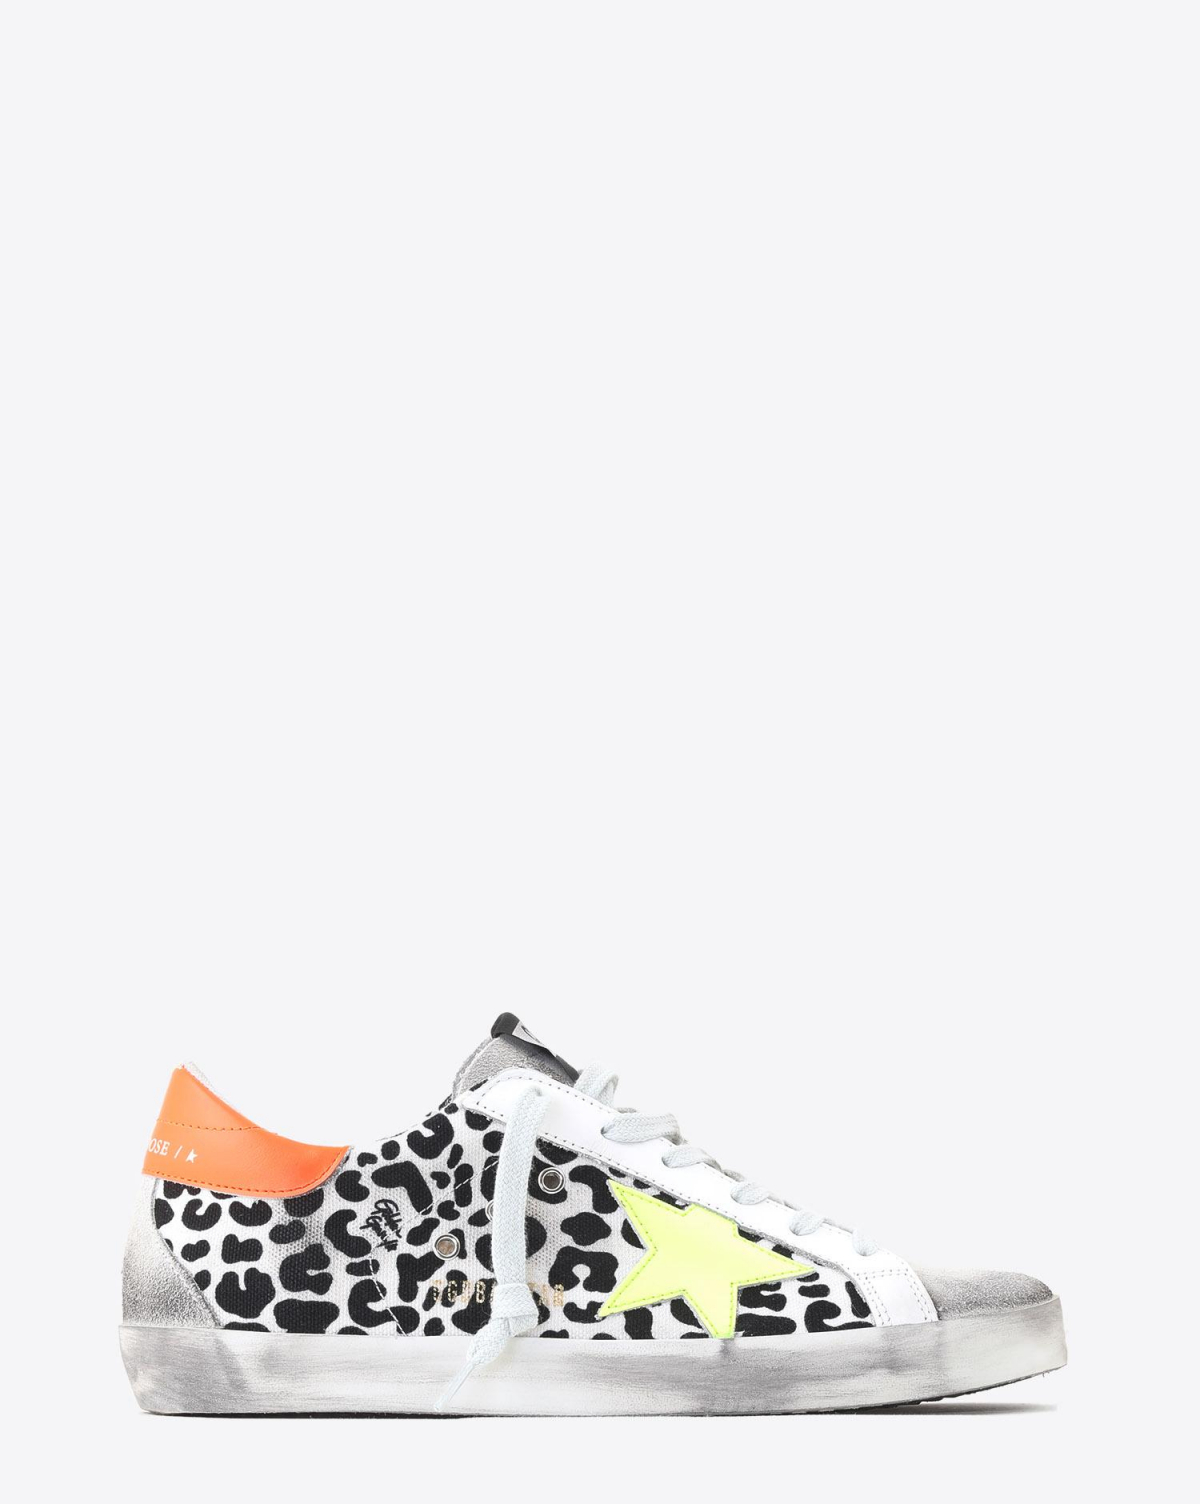 Golden Goose Woman Collection Sneakers Superstar toile imprimée léopard étoile jaune